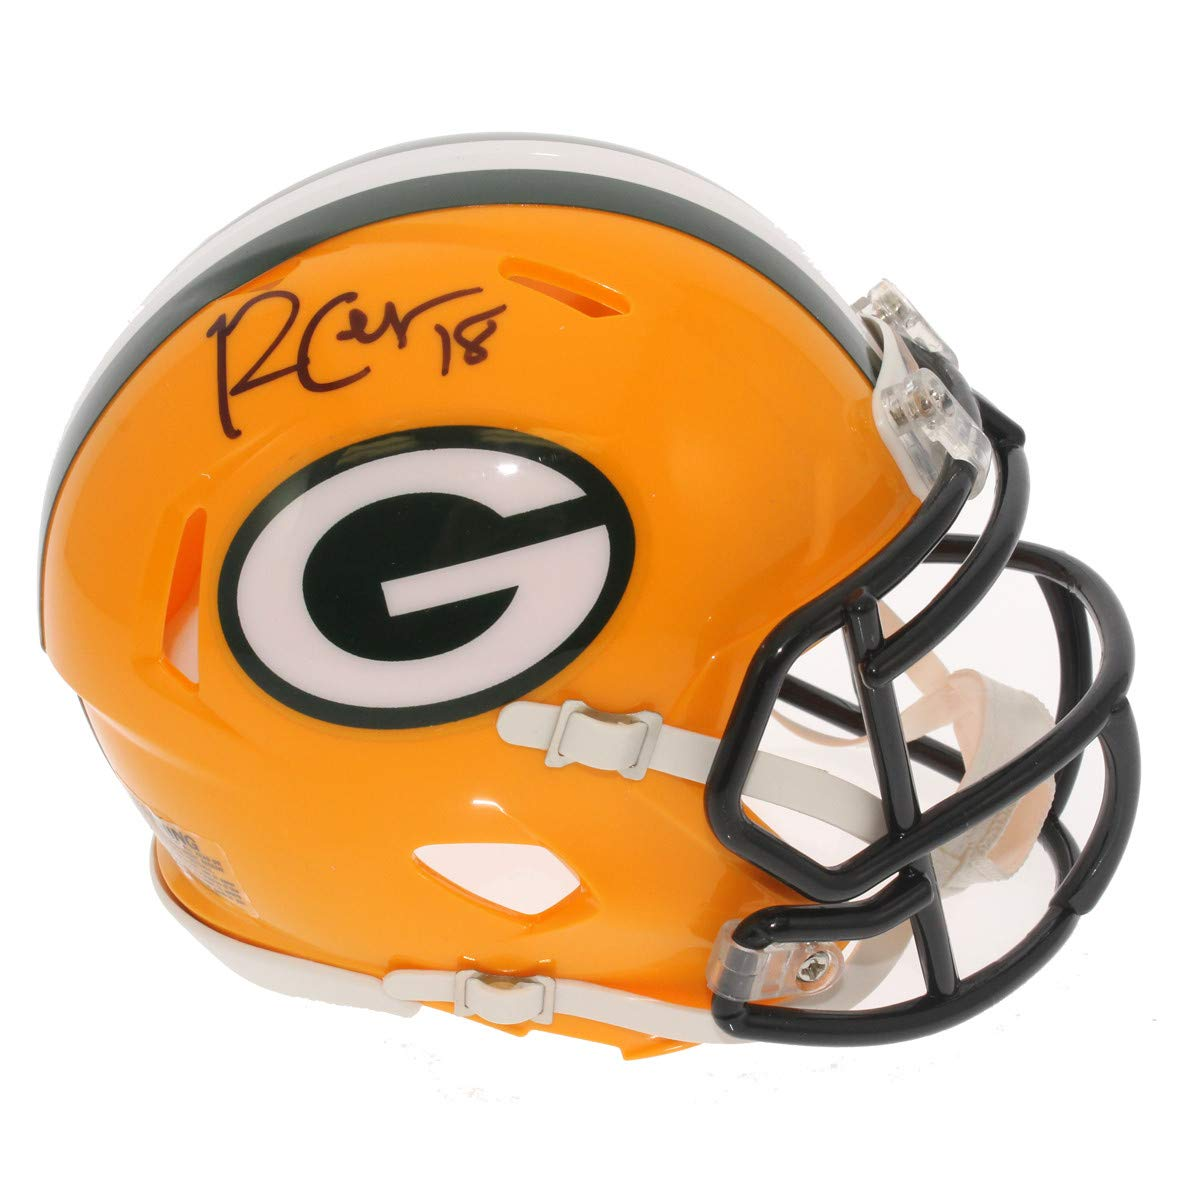 Randall Cobb Autographed Signed Green Bay Packers Speed Mini Helmet - JSA Certified Authentic